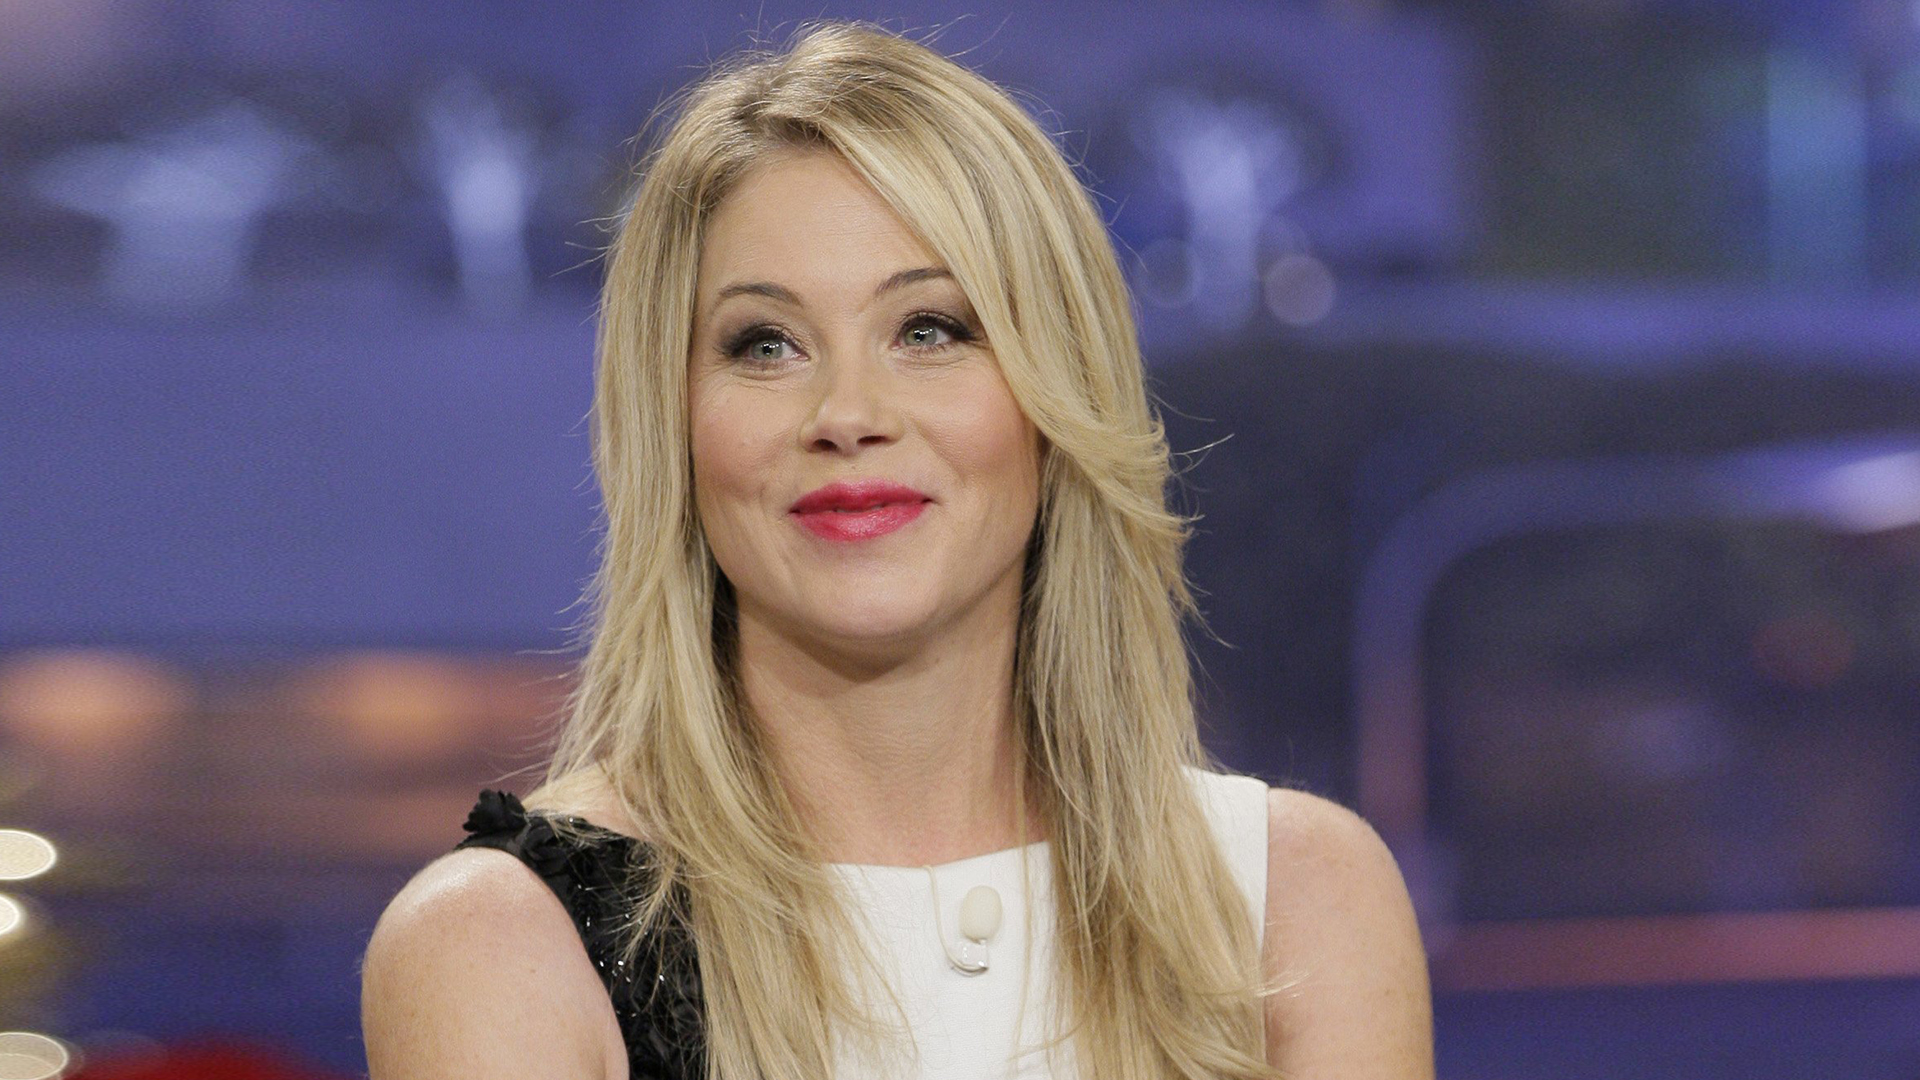 Christina Applegate nude photos 2019